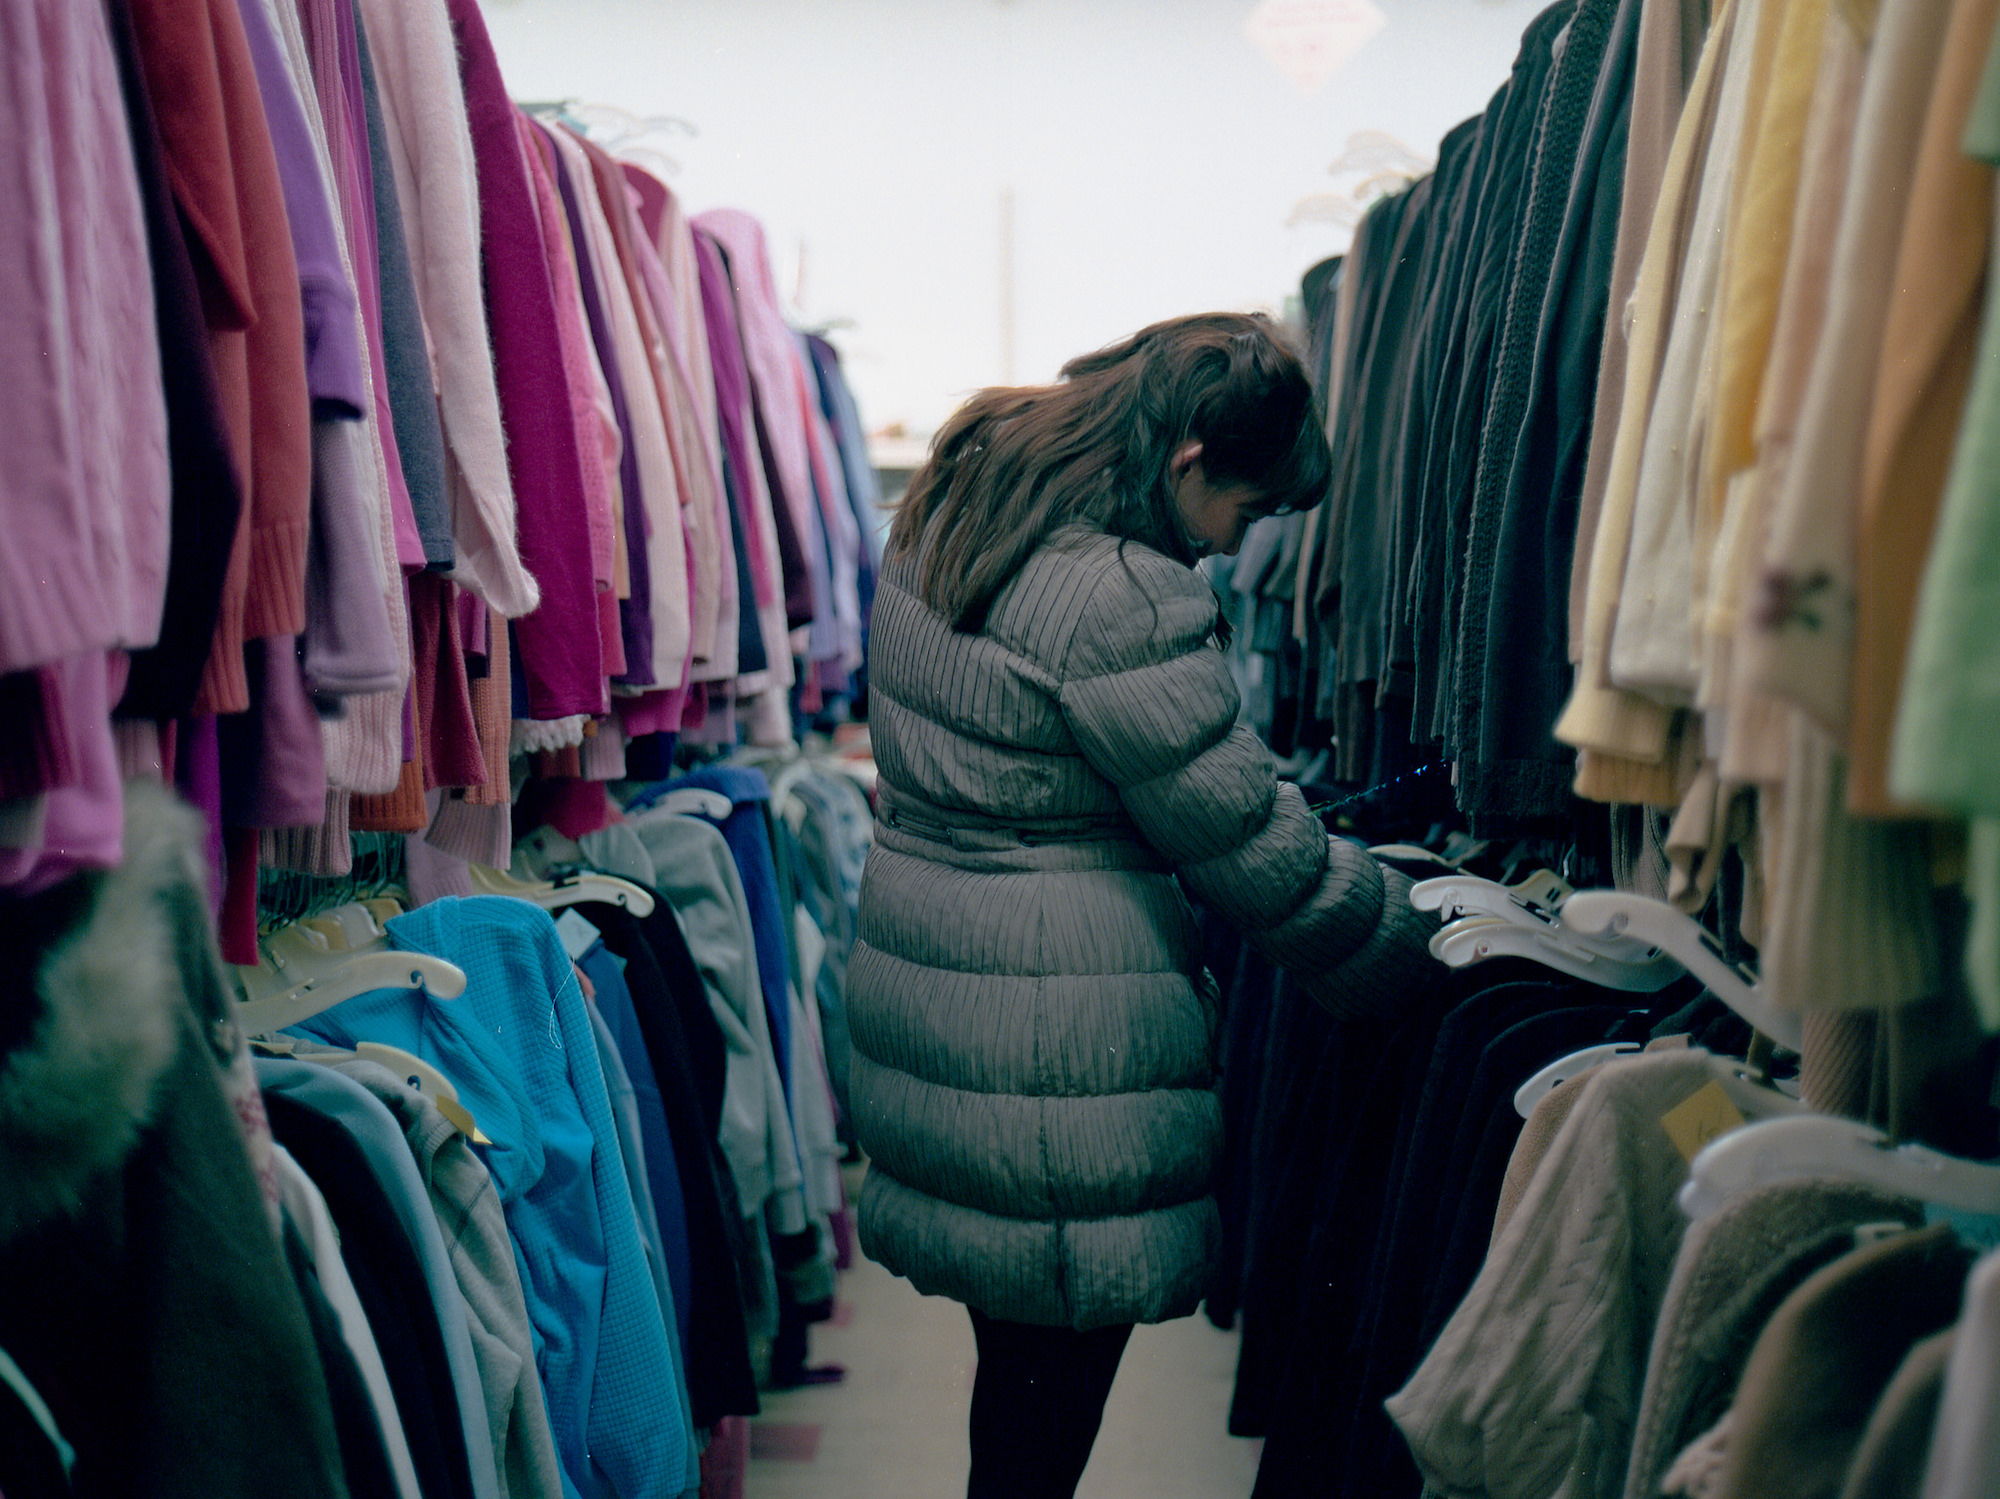 If you've never experienced the thrill that is thrift shopping here's the 'how too' on the best way to thrift and find the best stuff every time. (David Sorich/Flickr via Creative Common)